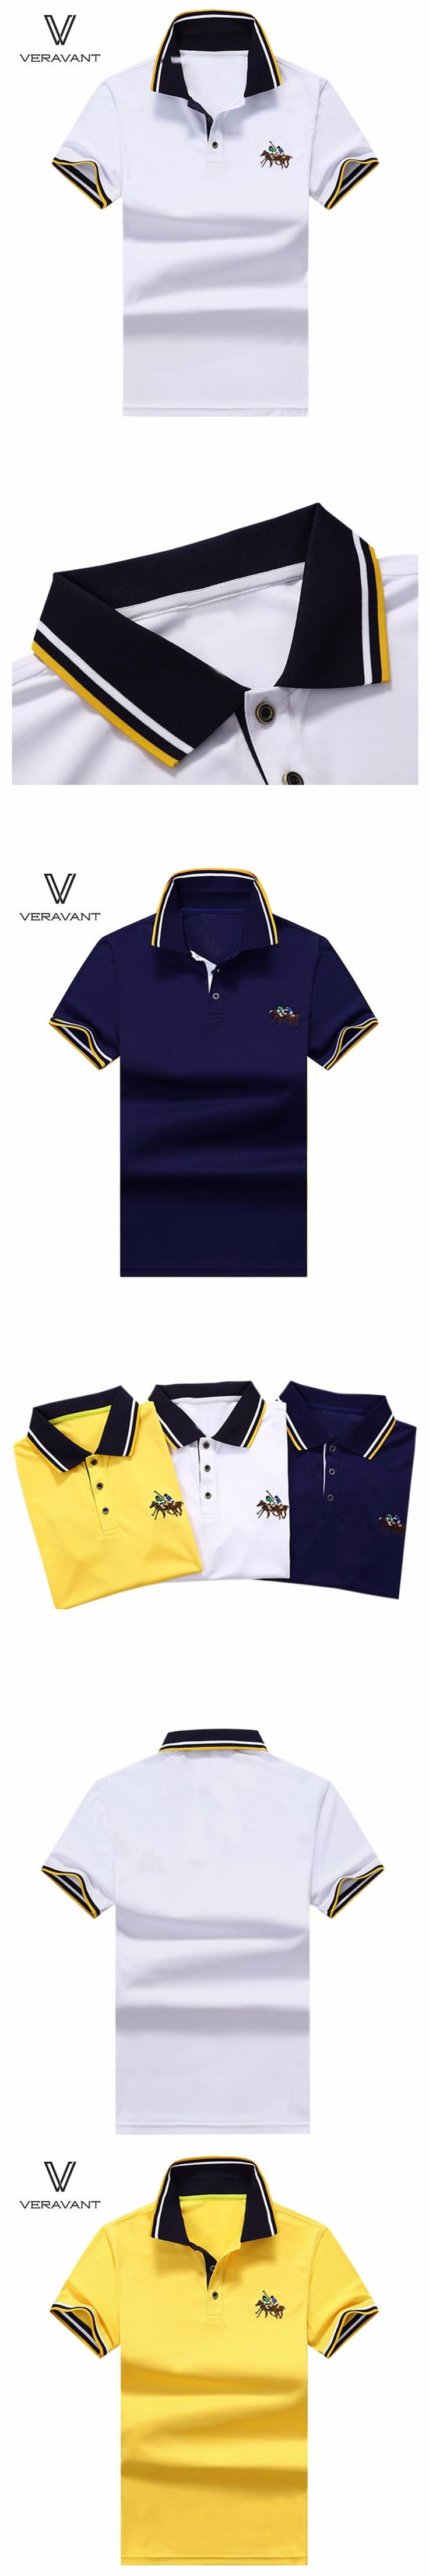 Men Polo Embroidery Poloshirt Casual Polo Shirts Short Sleeve Tops 2017 Summer Polos Turn-Down Collar Polo Shirt